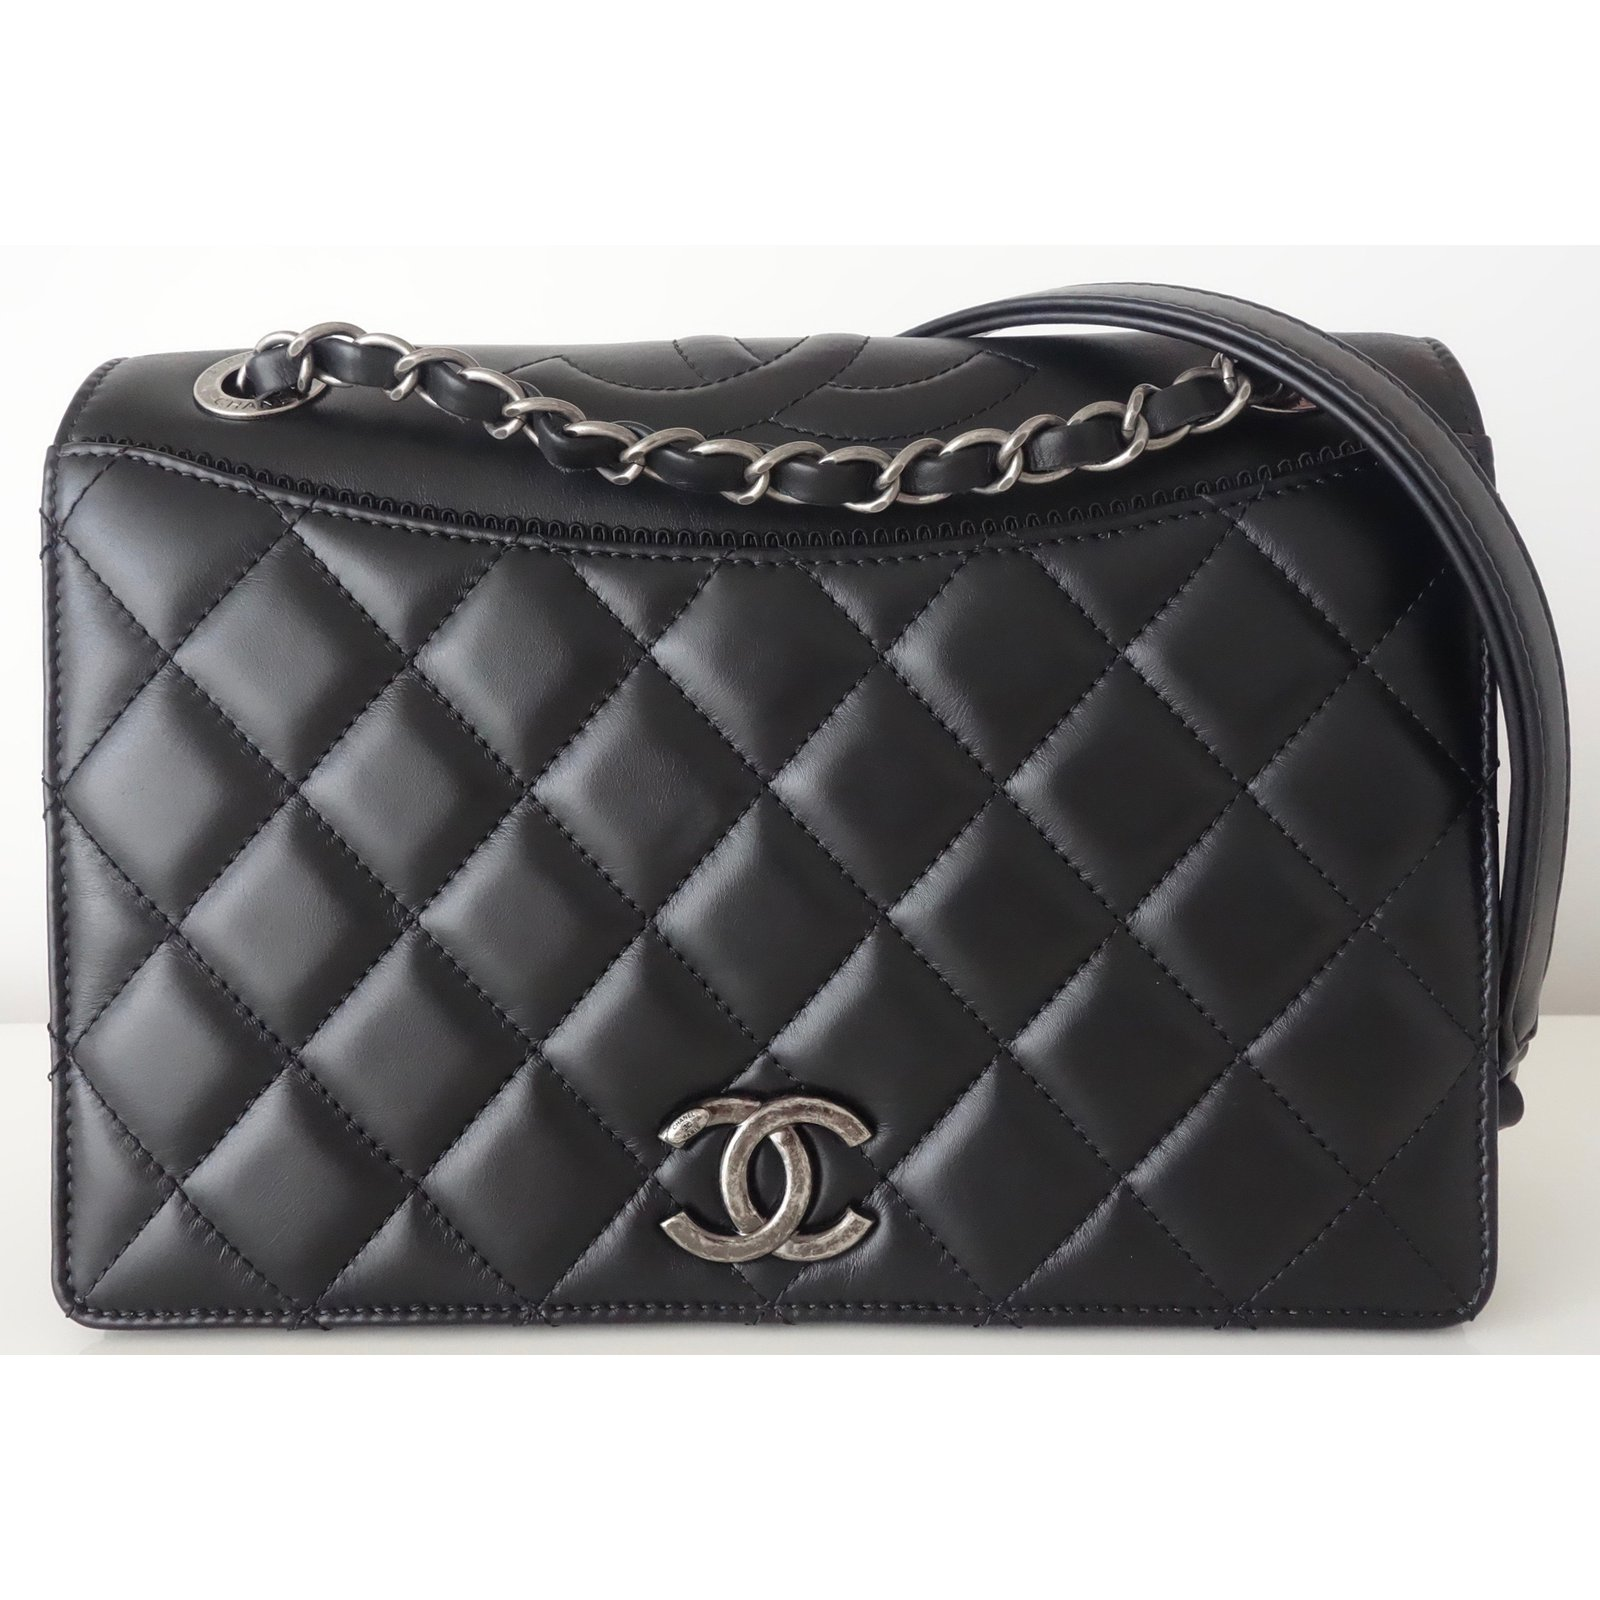 Chanel Handbags Leather Black Ref 62990